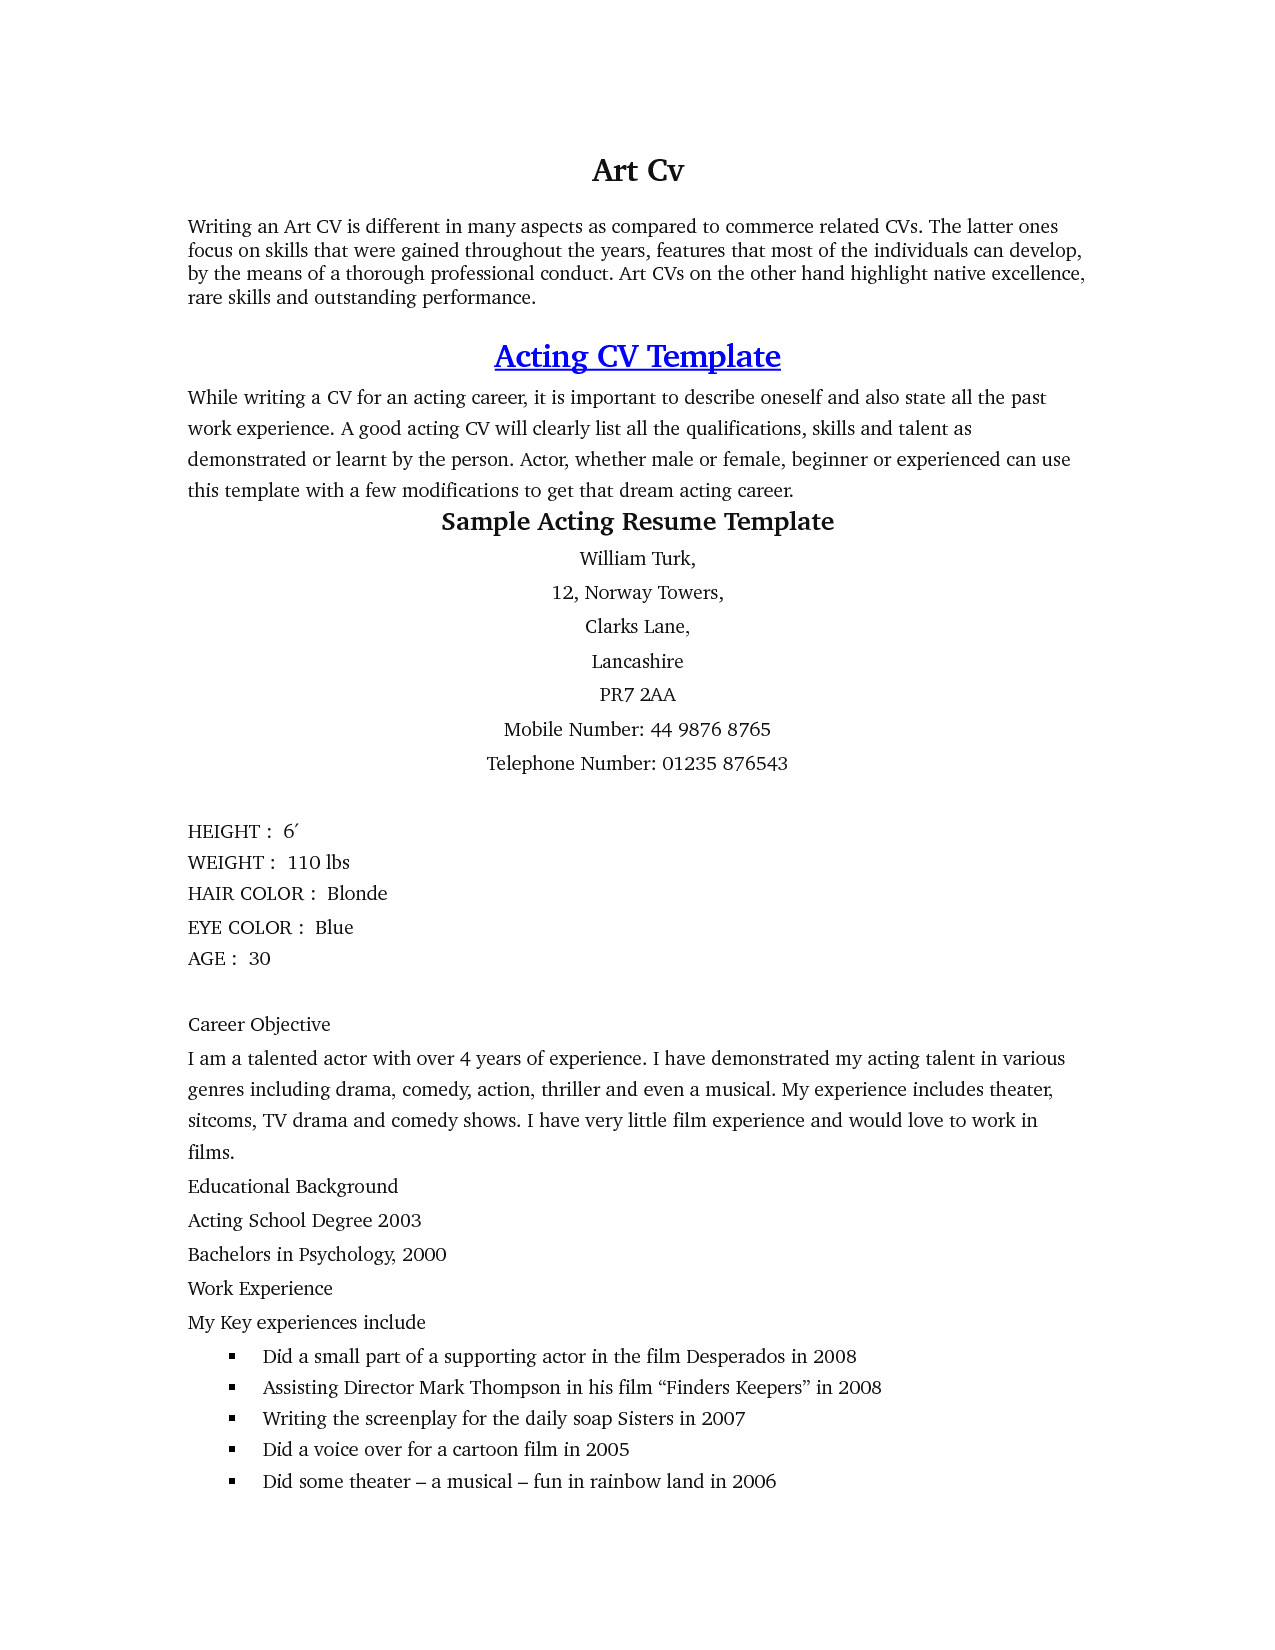 Beginner Actor Resume Template Pin Oleh Jobresume Di Resume Career Termplate Free